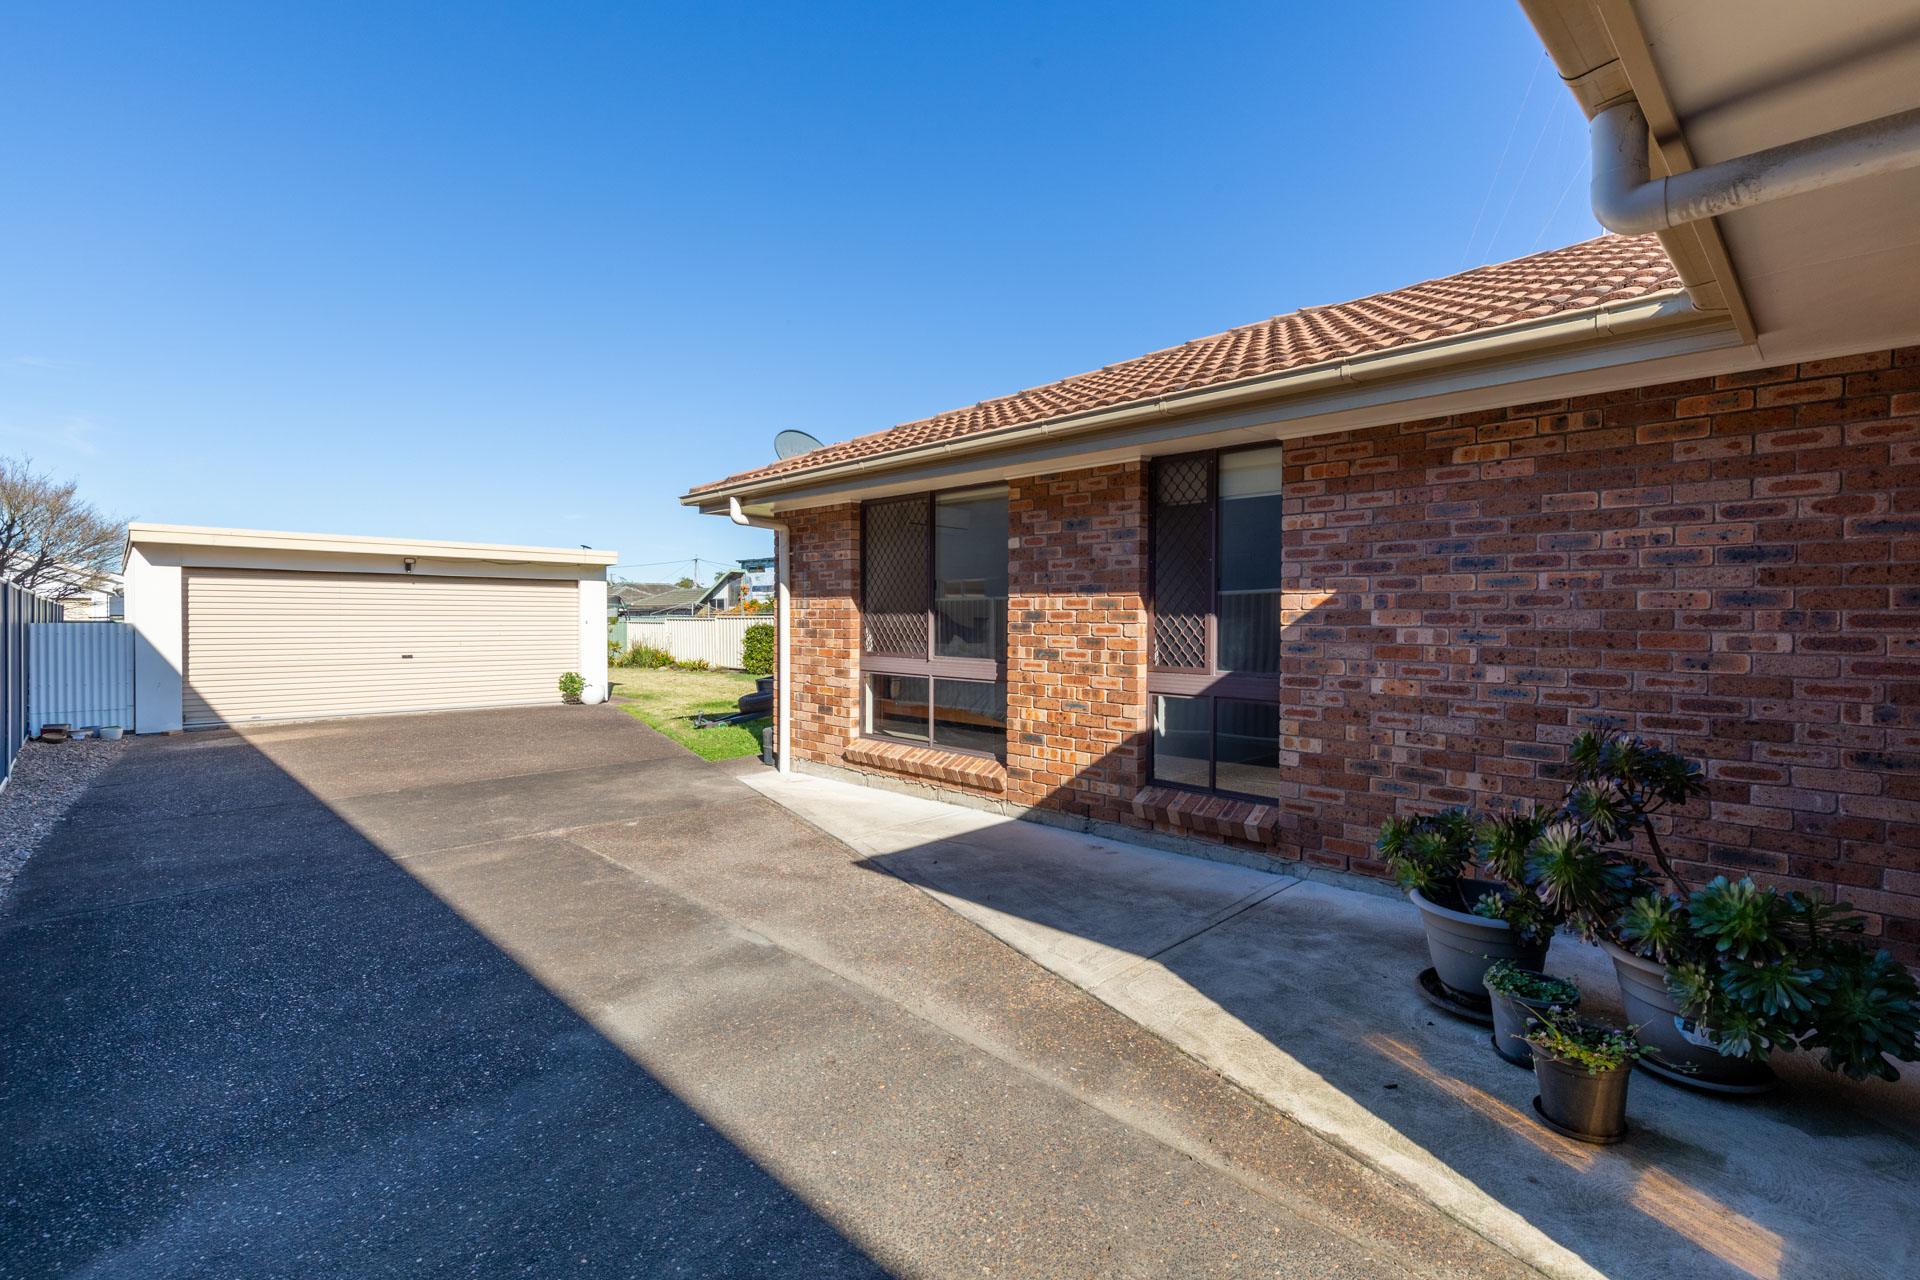 70 Medcalf St   Warners Bay (8 of 18)